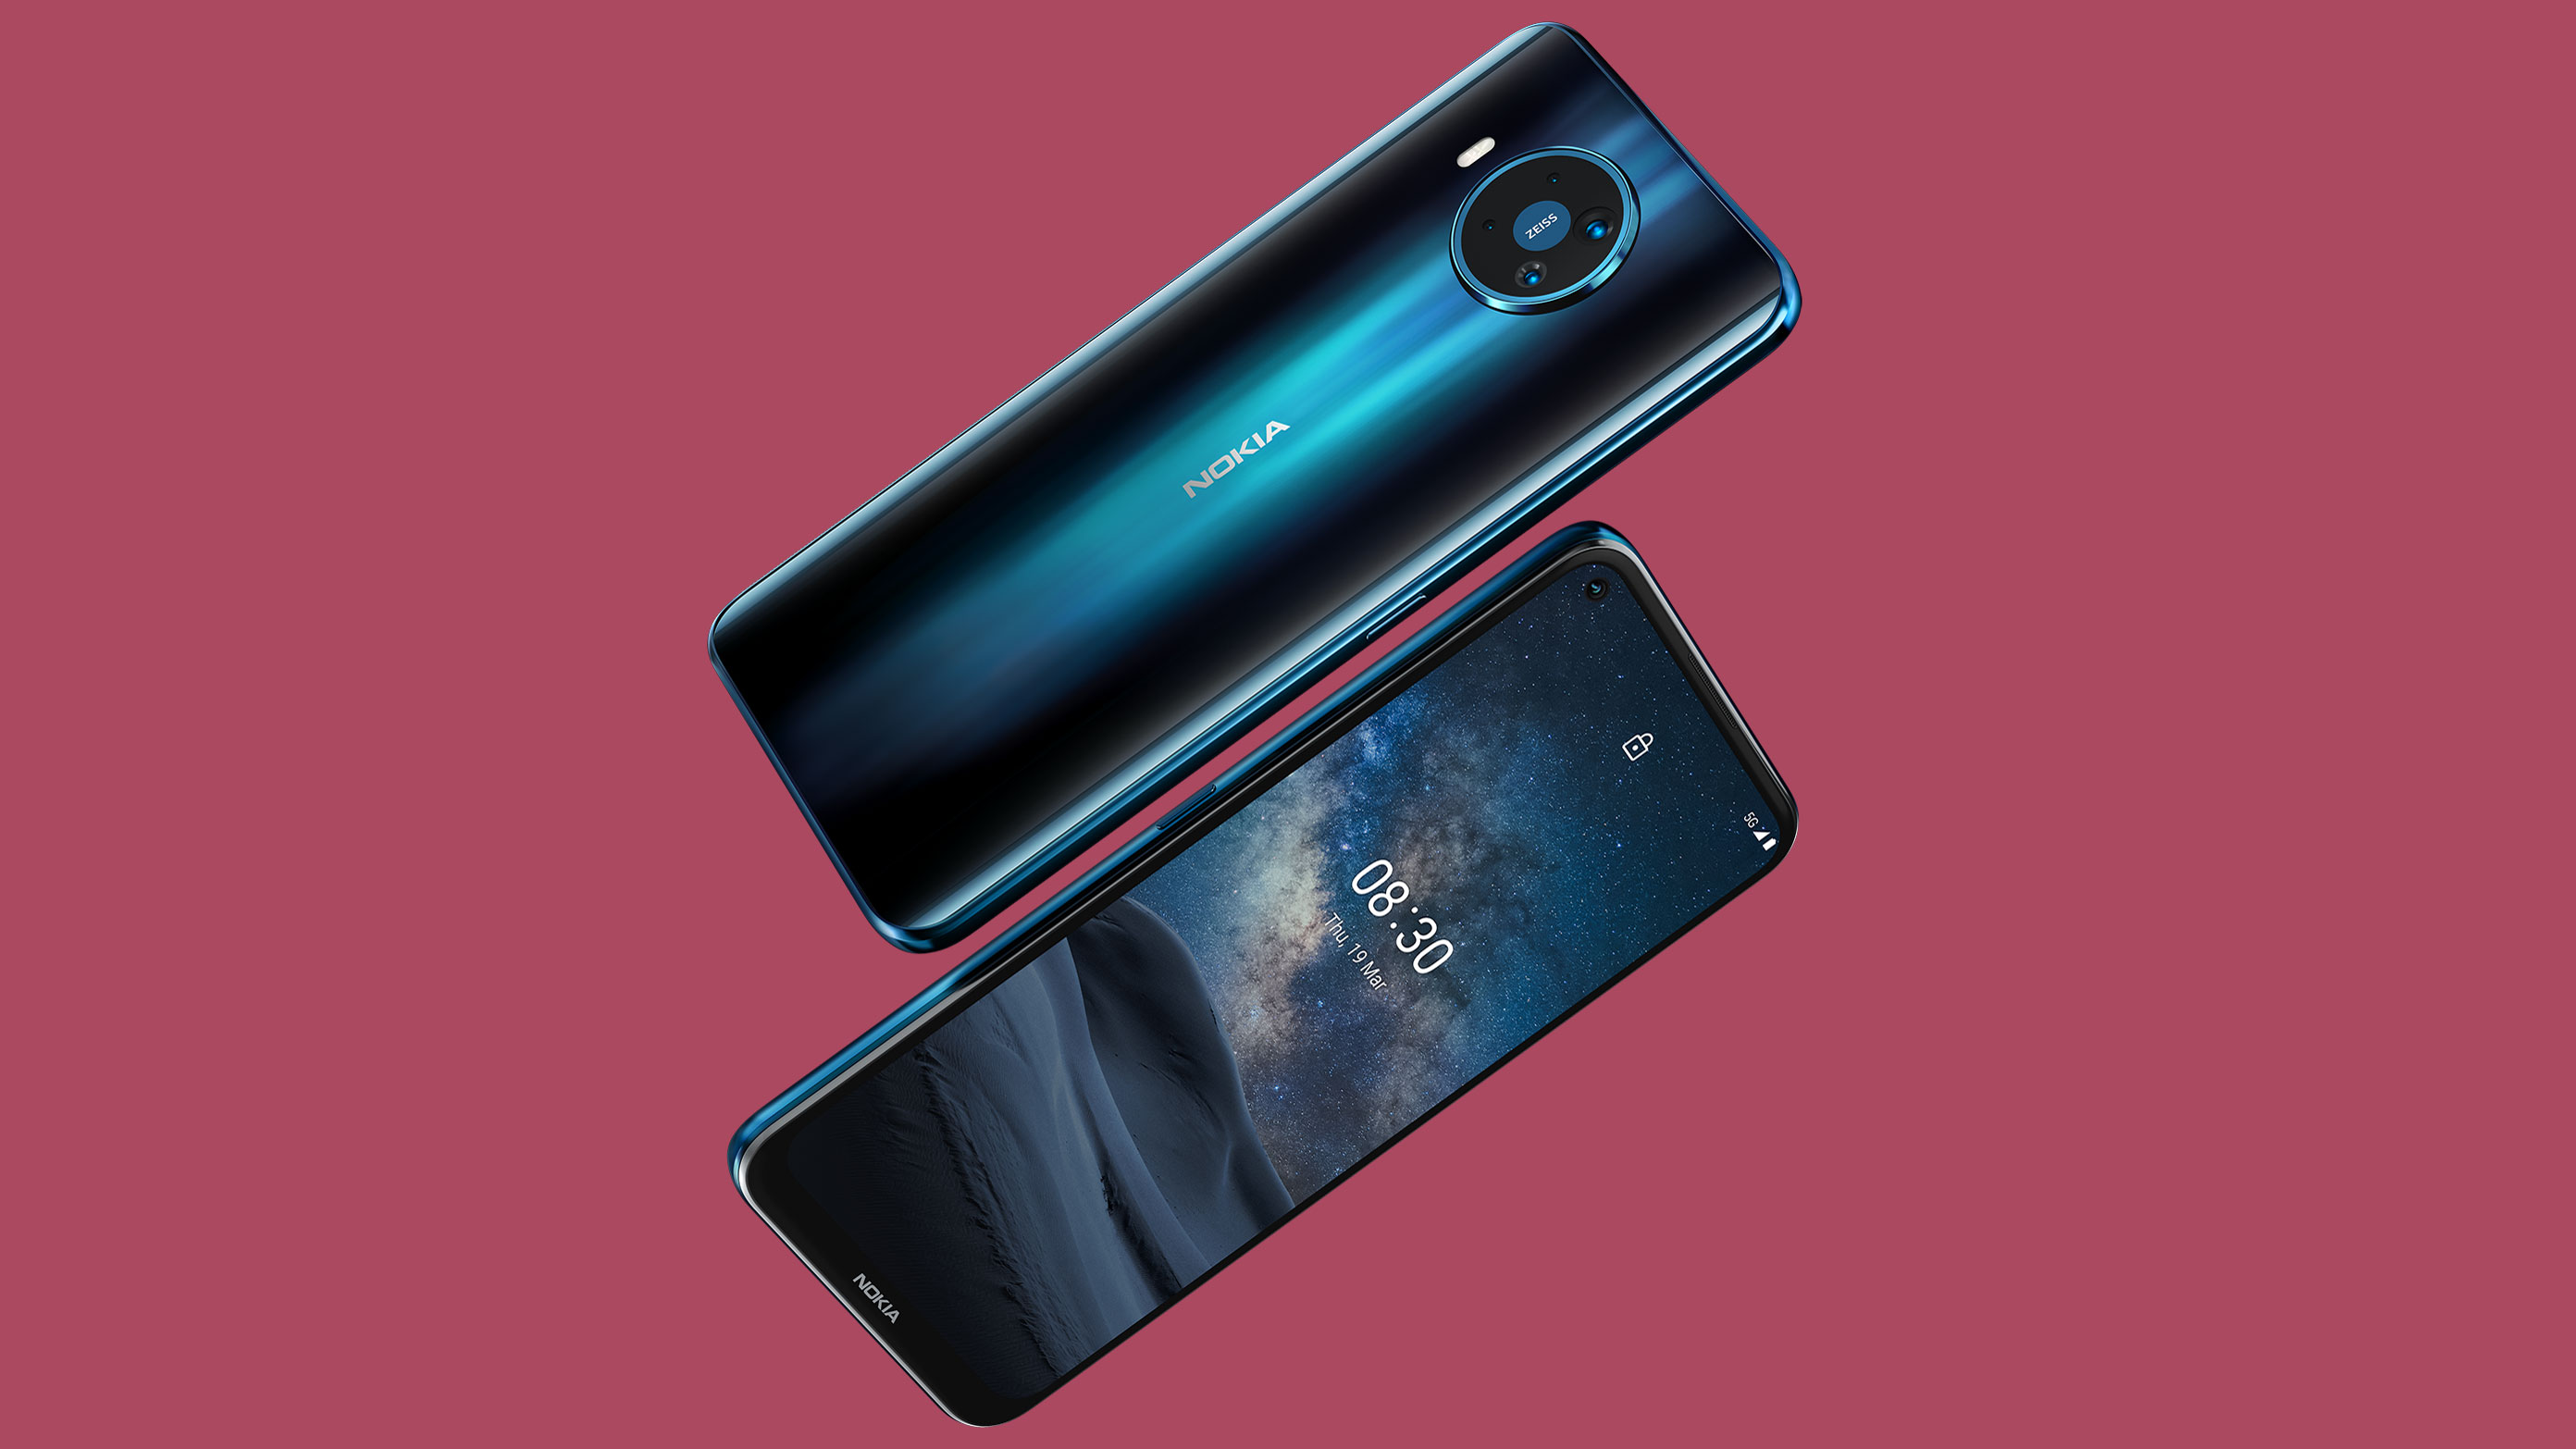 Nokia 8 3 The First 5g Nokia Phone Might Be Available To Buy Soon Techradar